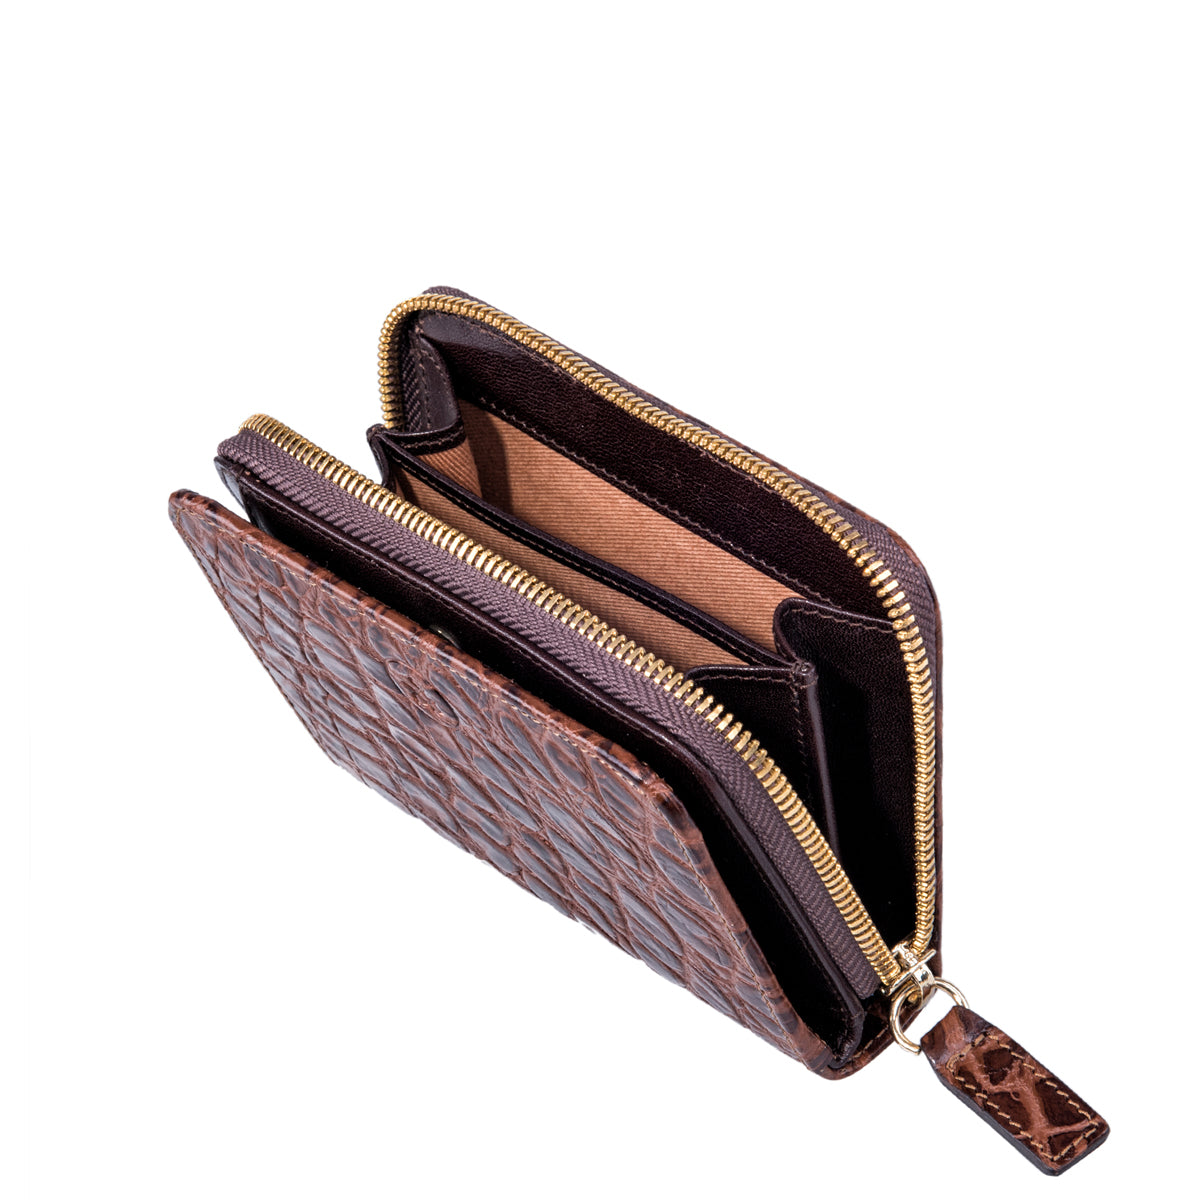 Image 2 of the 'Forino' Chocolate Mock Croc Veg Tanned Leather Purse